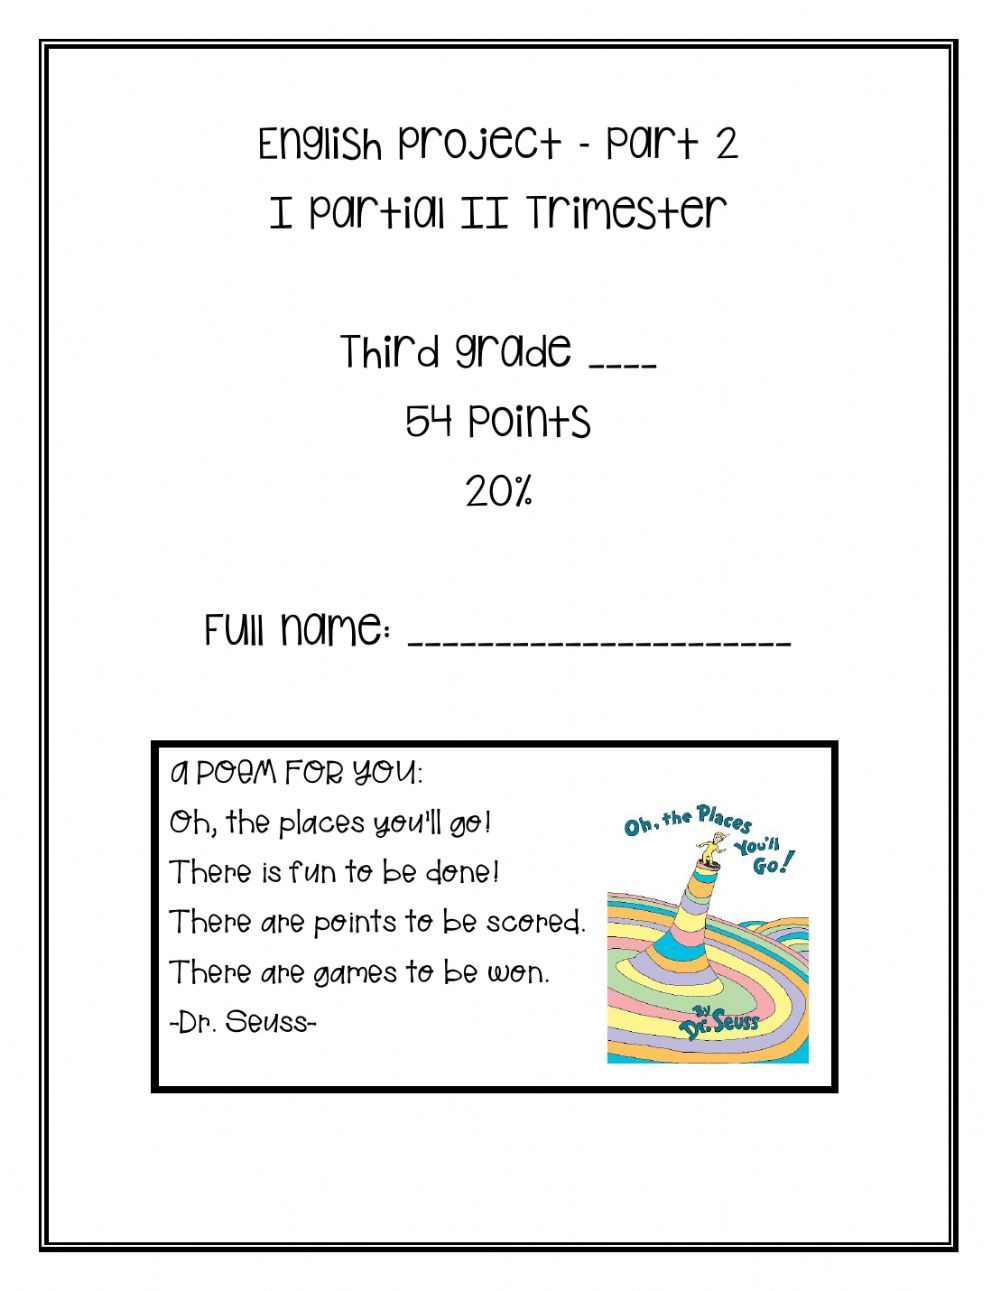 hight resolution of I Partial Project (II Trimester) - Part 2 worksheet